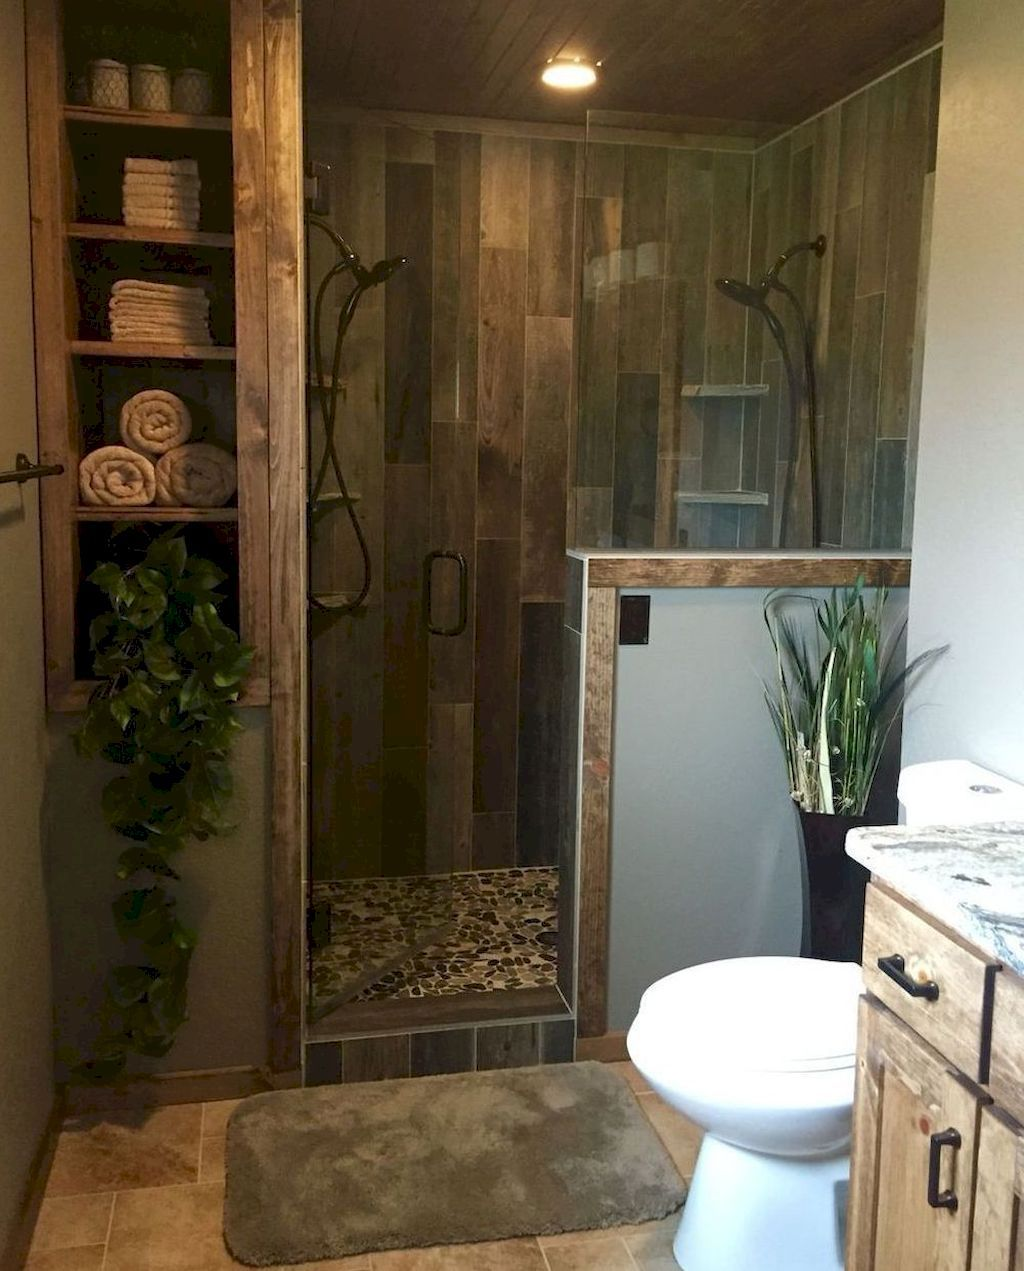 80 rustic farmhouse master bathroom remodel ideas modern on beautiful farmhouse bathroom shower decor ideas and remodel an extraordinary design id=56704